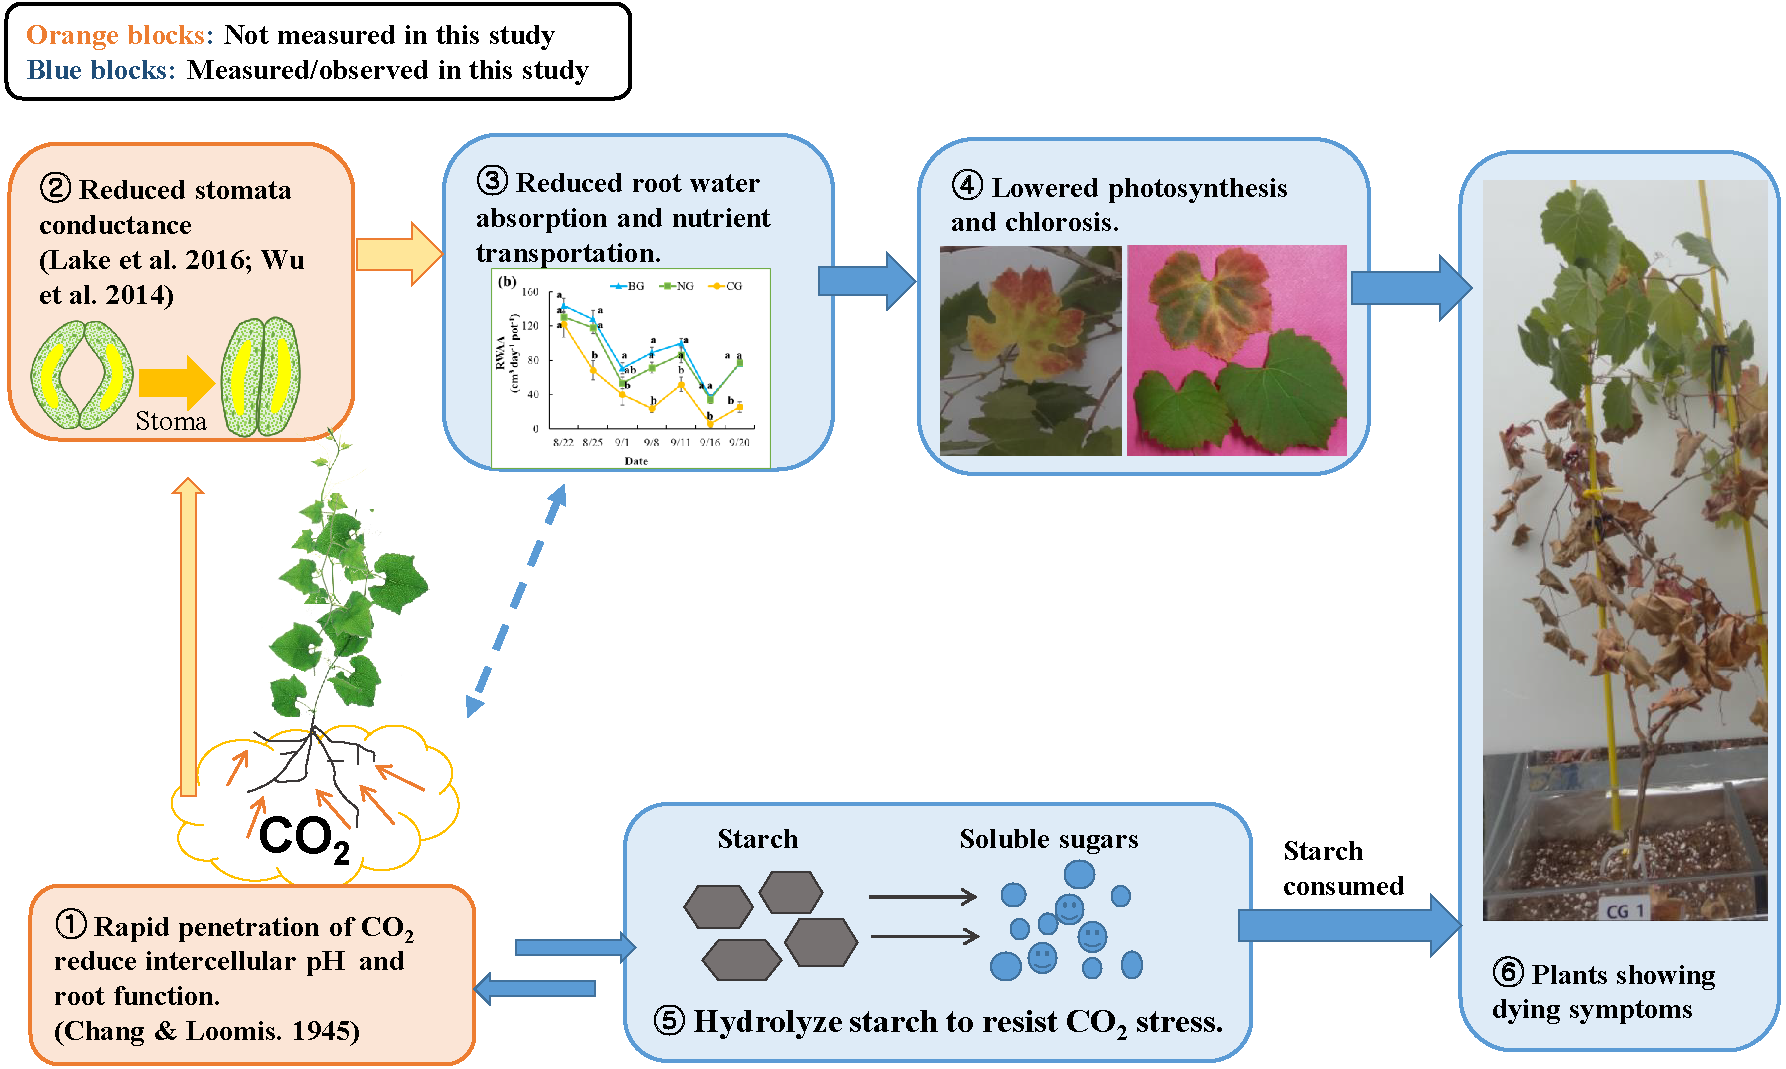 Impact assessment of high soil CO2 on plant growth and soil